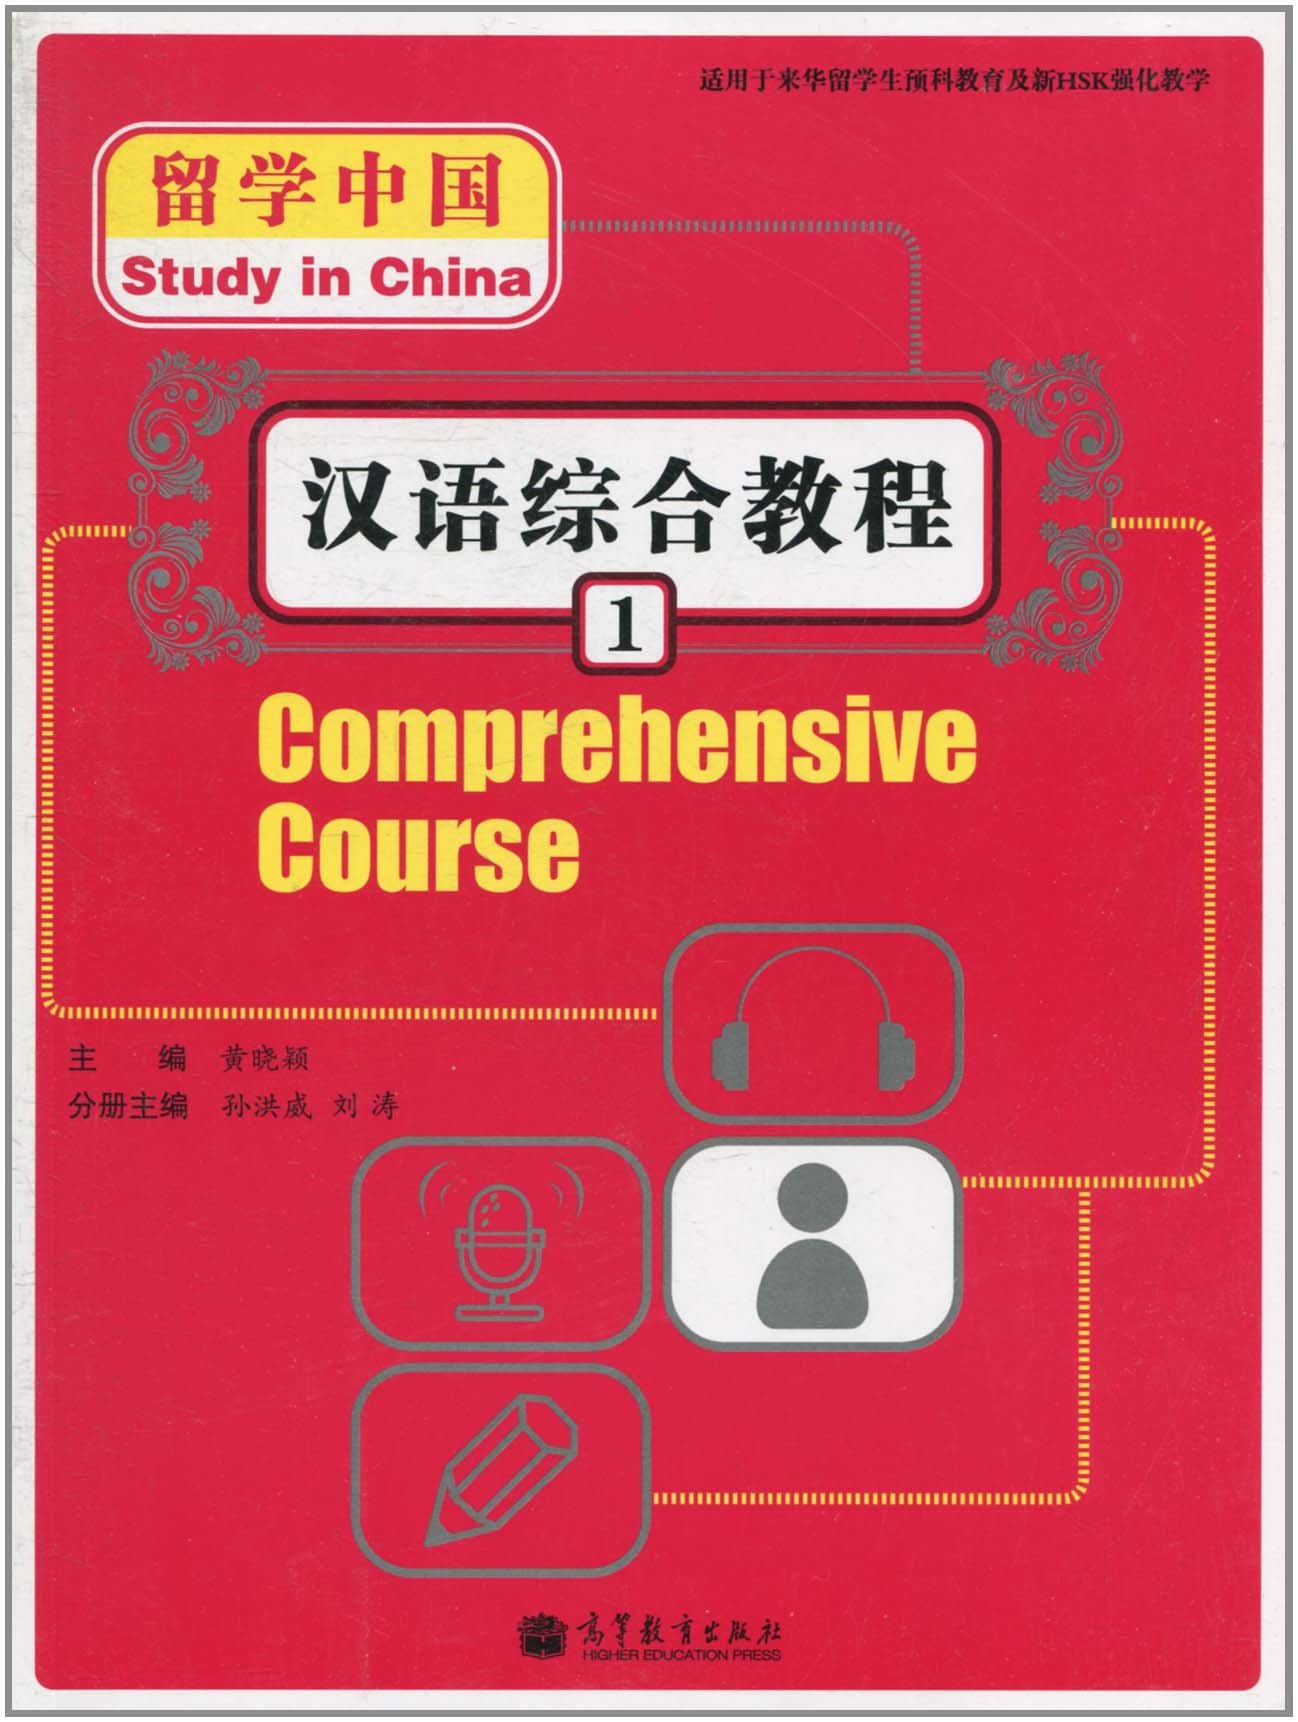 Learn Chinese Online with CLI